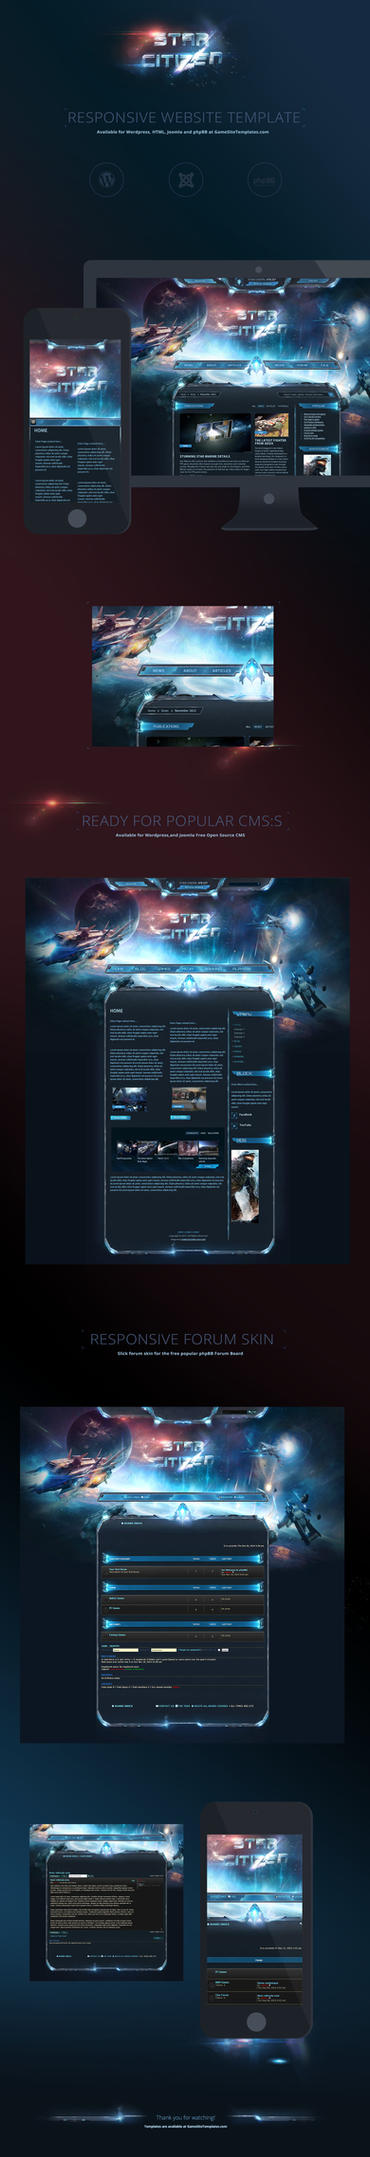 SciFi-StarCitizen-Gamesite-Template-Website by karsten